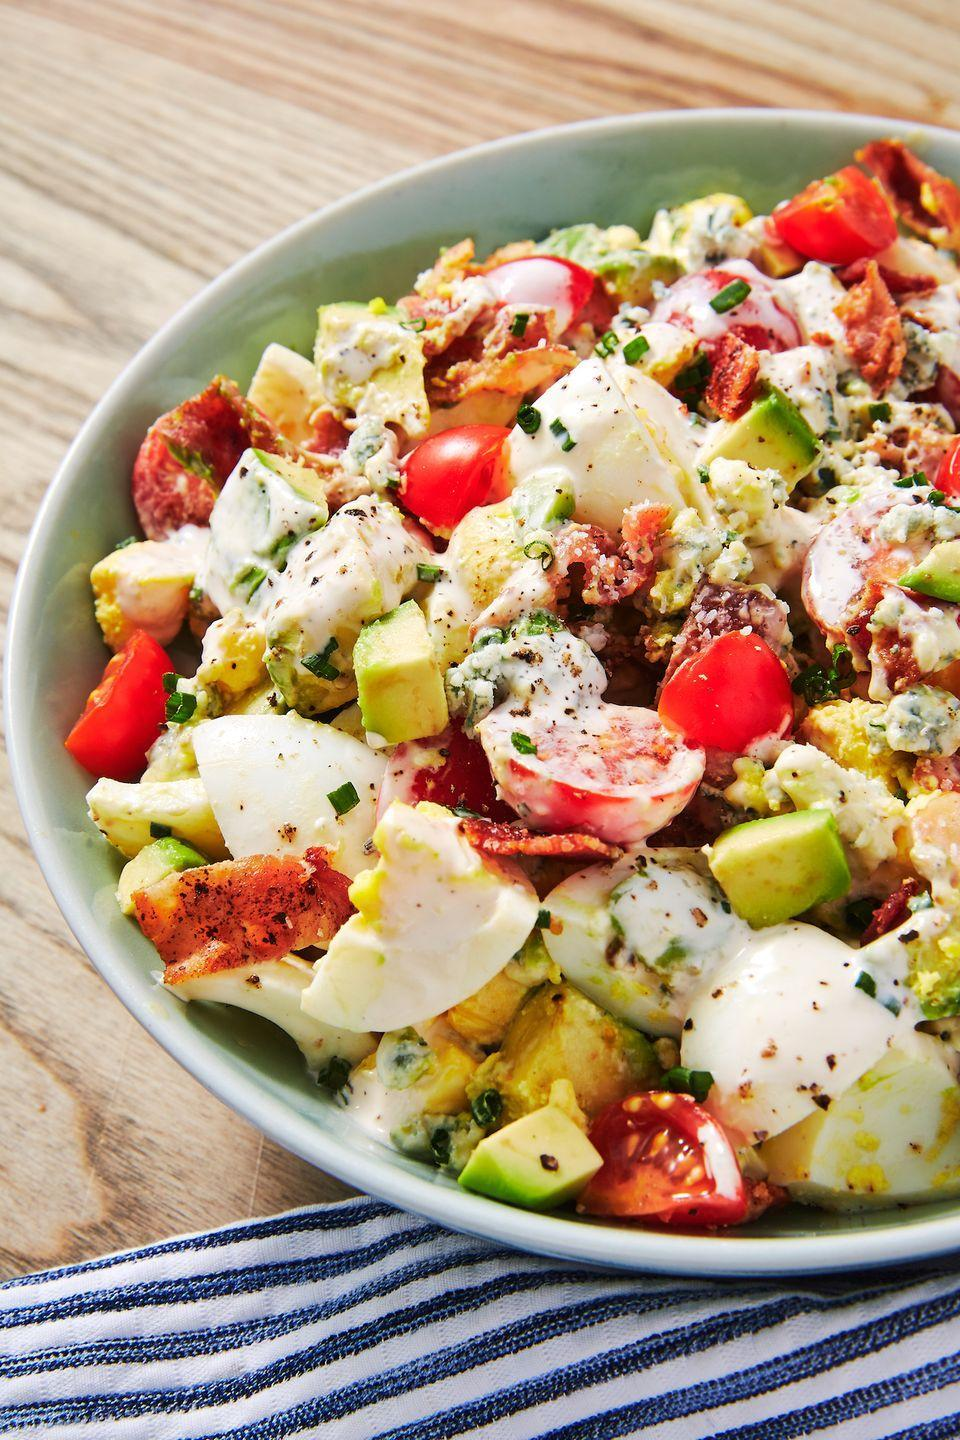 """<p>Egg salad is wonderful as is. But add bacon, blue cheese, avocado, and tomatoes, and you've got a lunch that you'll be dreaming about for days.</p><p>Get the recipe from <a href=""""https://www.delish.com/cooking/recipe-ideas/a19484613/cobb-egg-salad-recipe/"""" rel=""""nofollow noopener"""" target=""""_blank"""" data-ylk=""""slk:Delish"""" class=""""link rapid-noclick-resp"""">Delish</a>.</p>"""